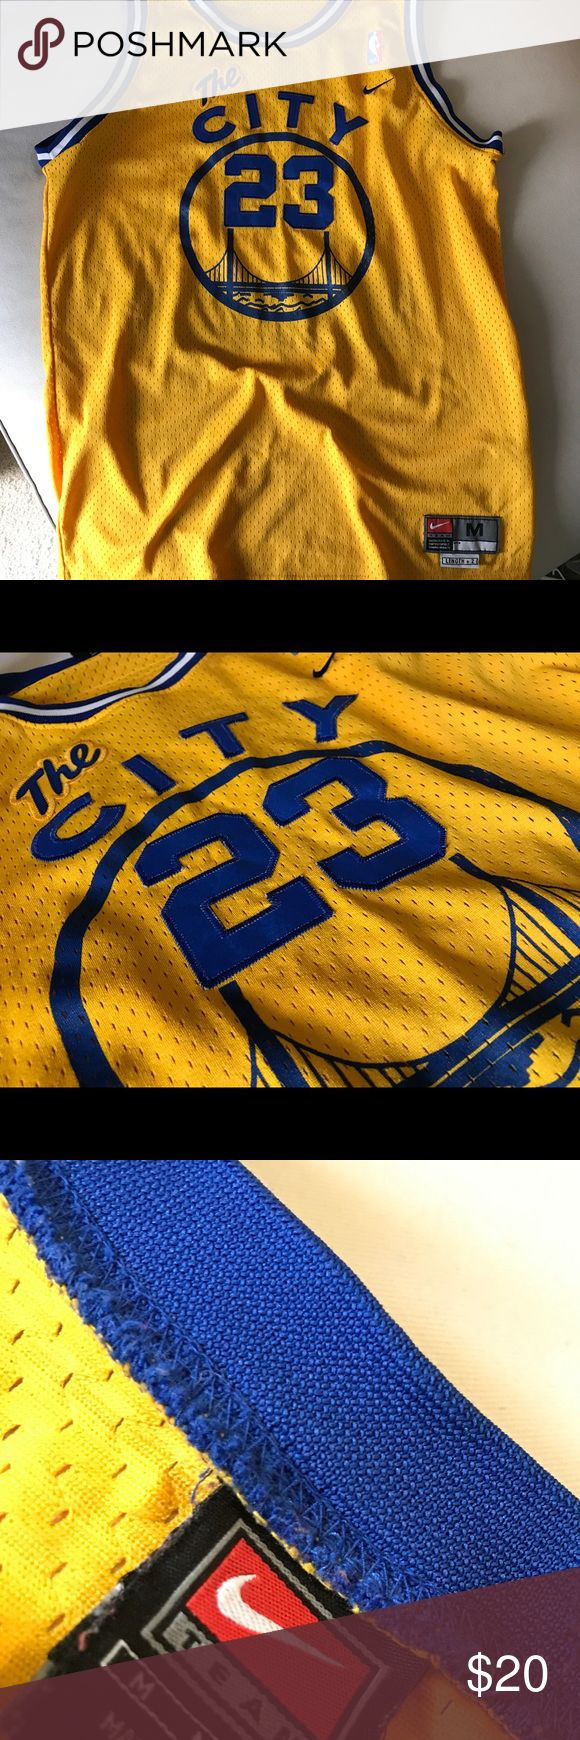 Nike Throwback Jason Richardson Warriors Jersey Super cool vintage throwback J-Rich jersey with old school The City logo. Stitched on premium letters and numbers. Minor hole in the neck area that was stitched an hardly noticeable (reflected in price). Rep the champs with this classic! Nike Other